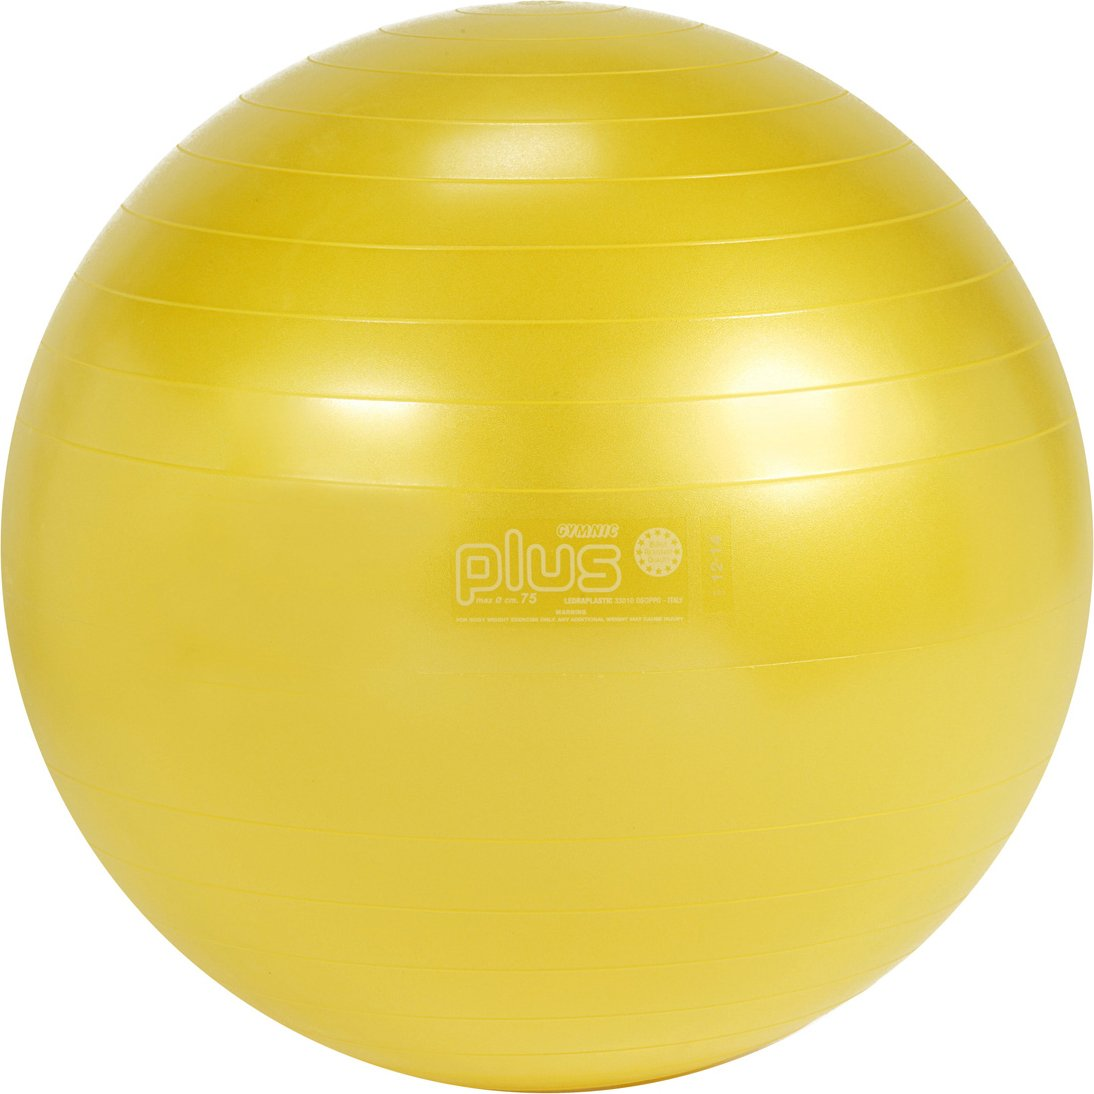 Gymnic Classic Plus Burst-Resistant Exercise Ball, Yellow (75 cm)